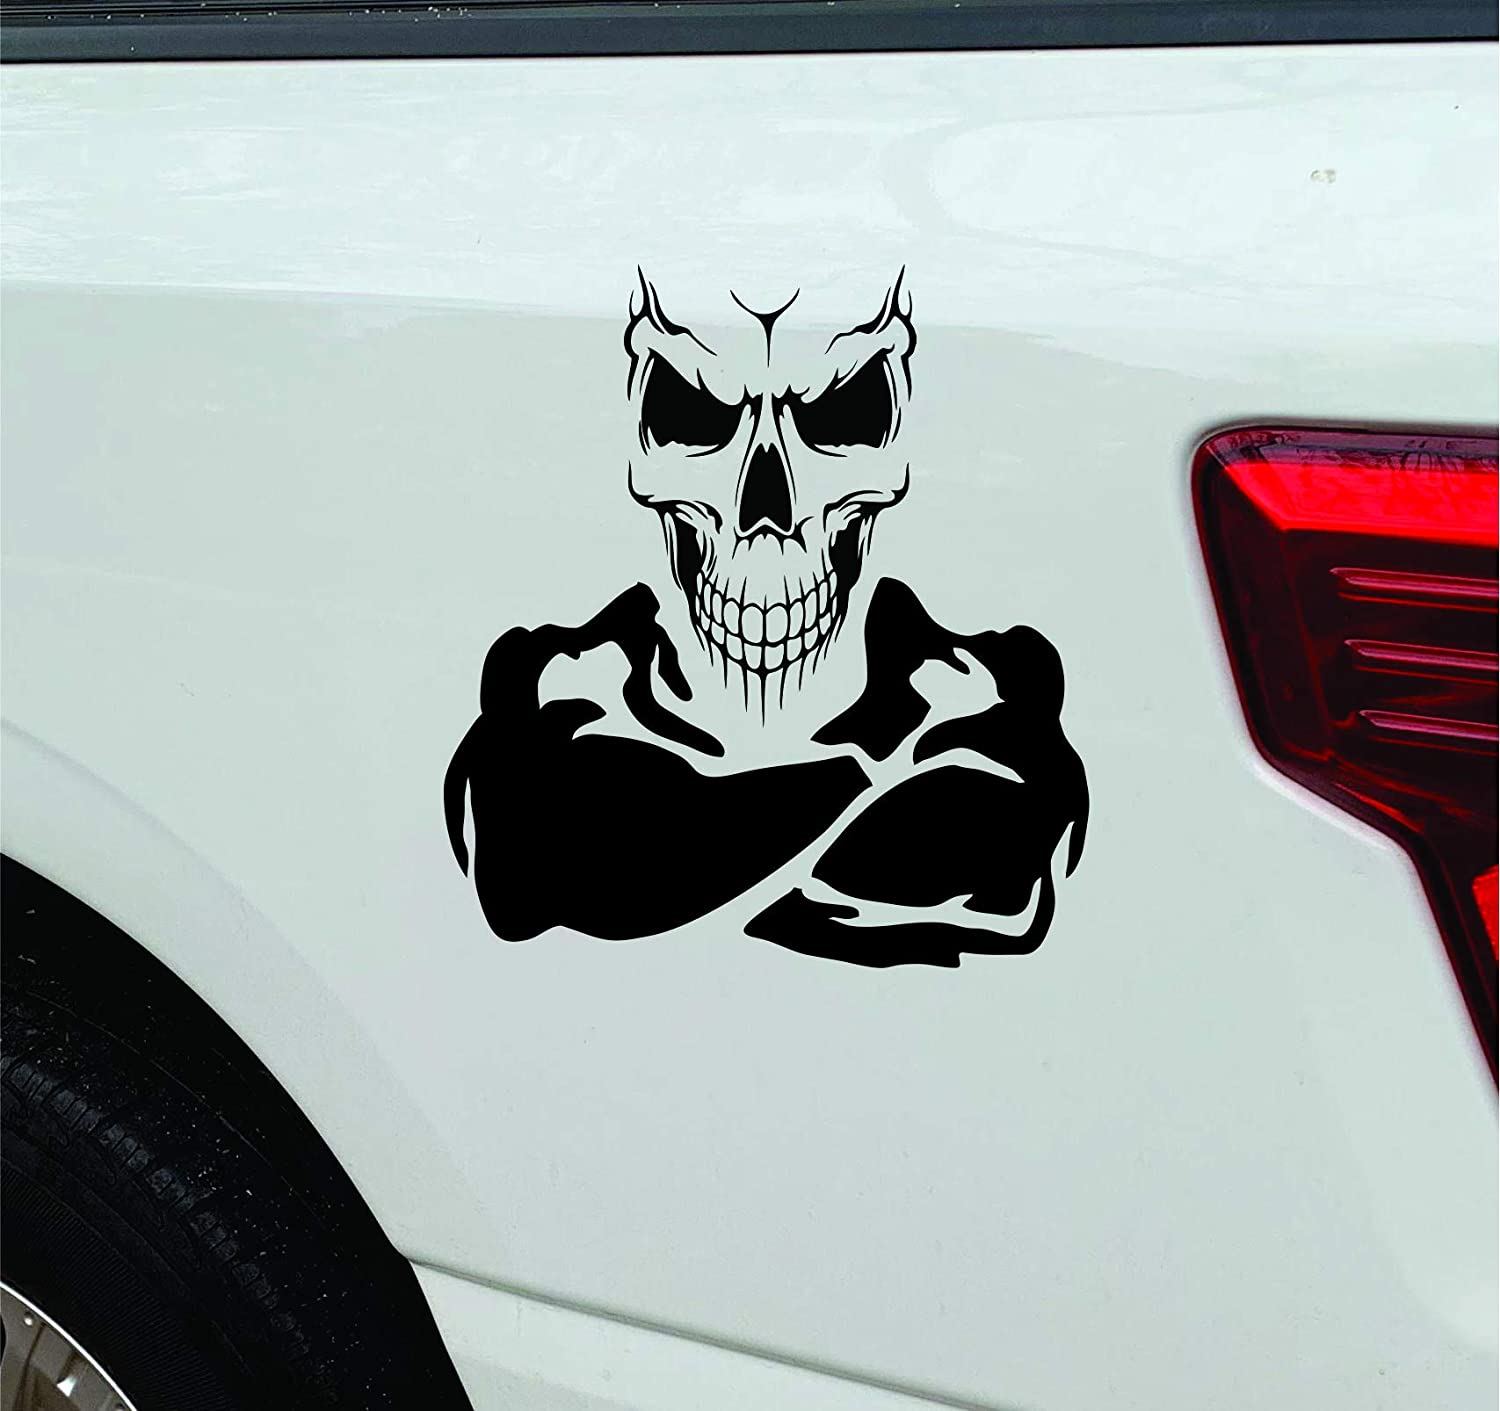 Skull With Crossed Popular popular Arms Truck Decal Car 2021new shipping free shipping of Set Sticker 2